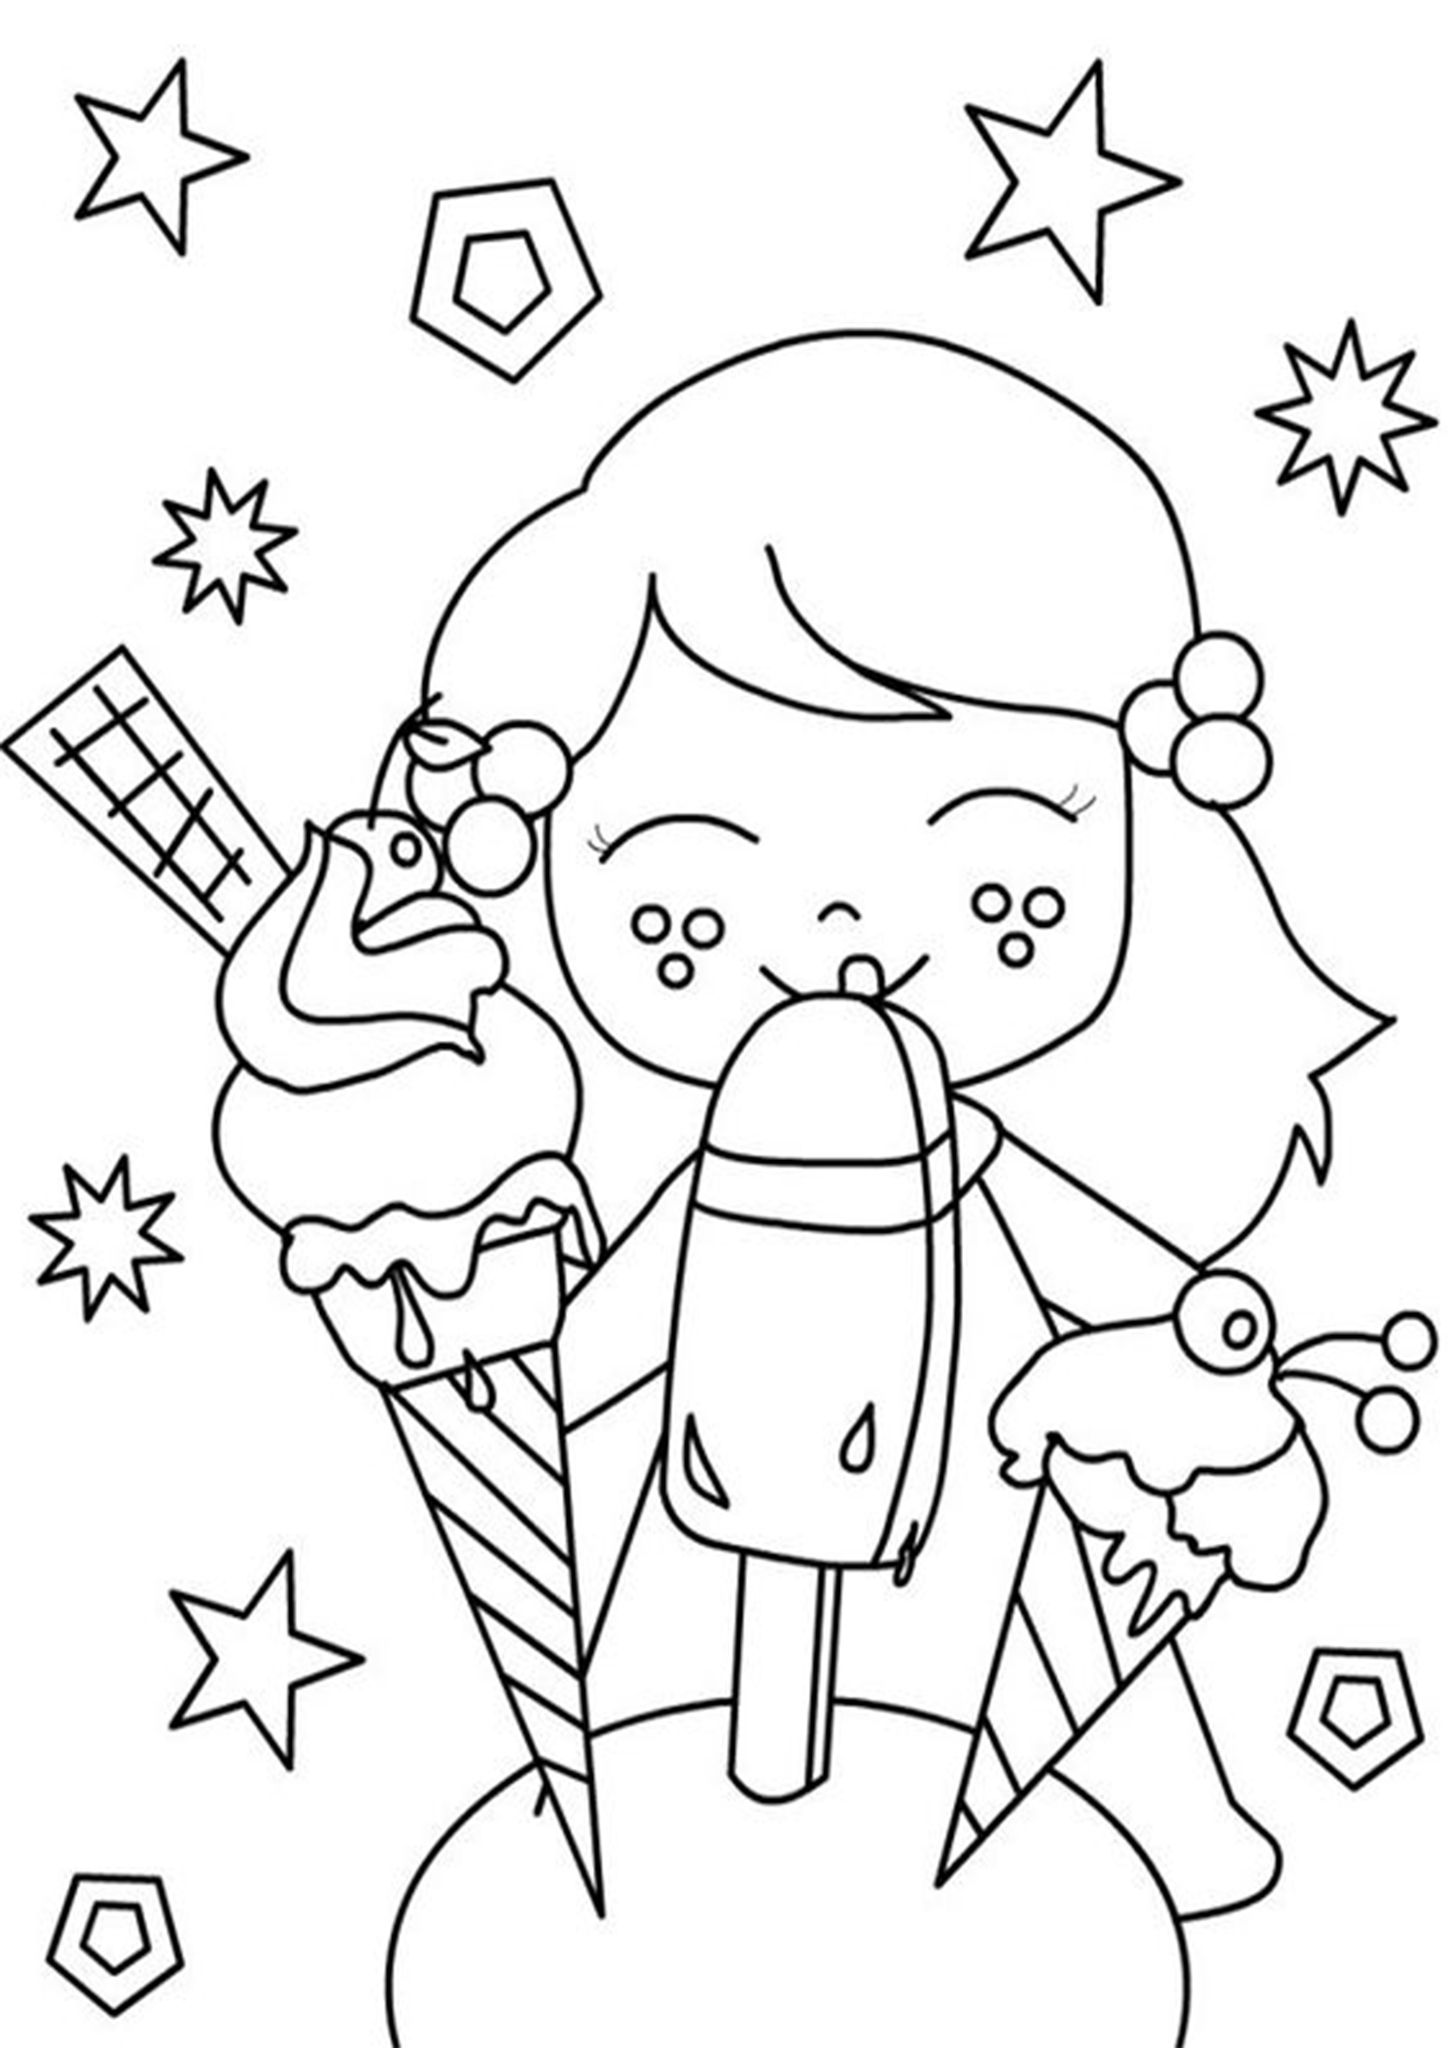 Free Easy To Print Ice Cream Coloring Pages Ice Cream Coloring Pages Summer Coloring Pages Coloring Pages